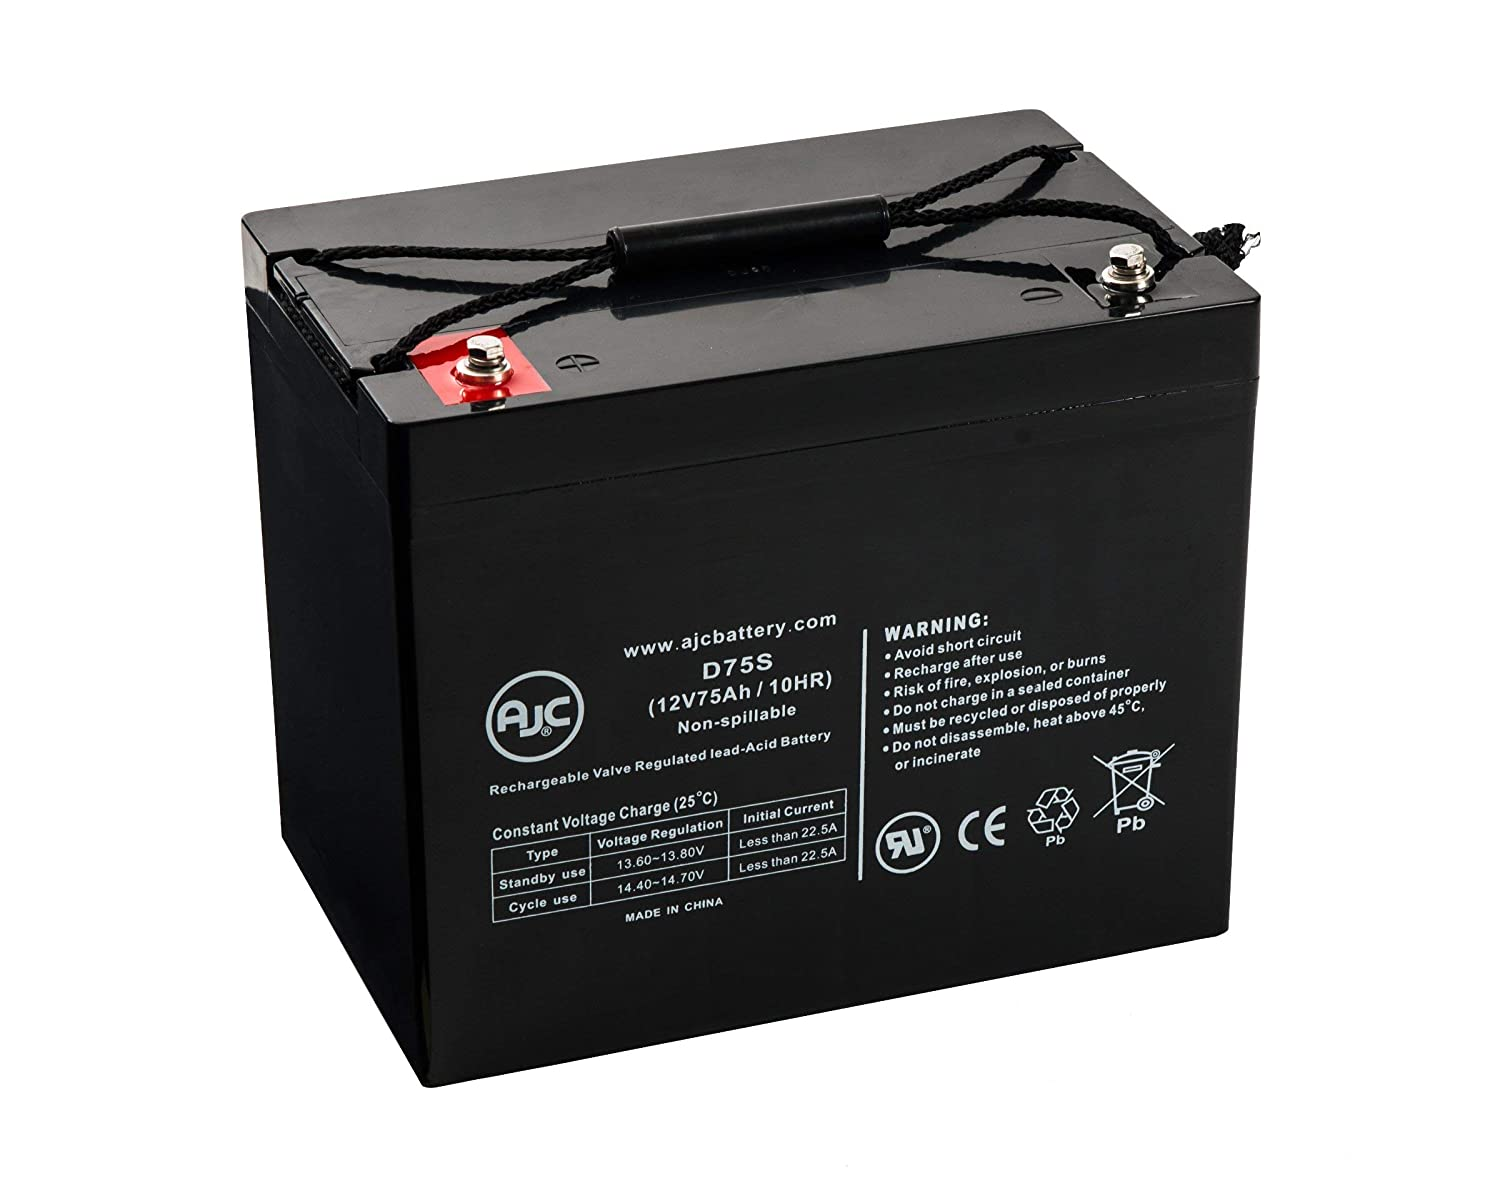 Quantum Rehab Q6 Edge Z 12V 75Ah Wheelchair and Mobility Battery - This is an AJC Brand Replacement AJC Battery